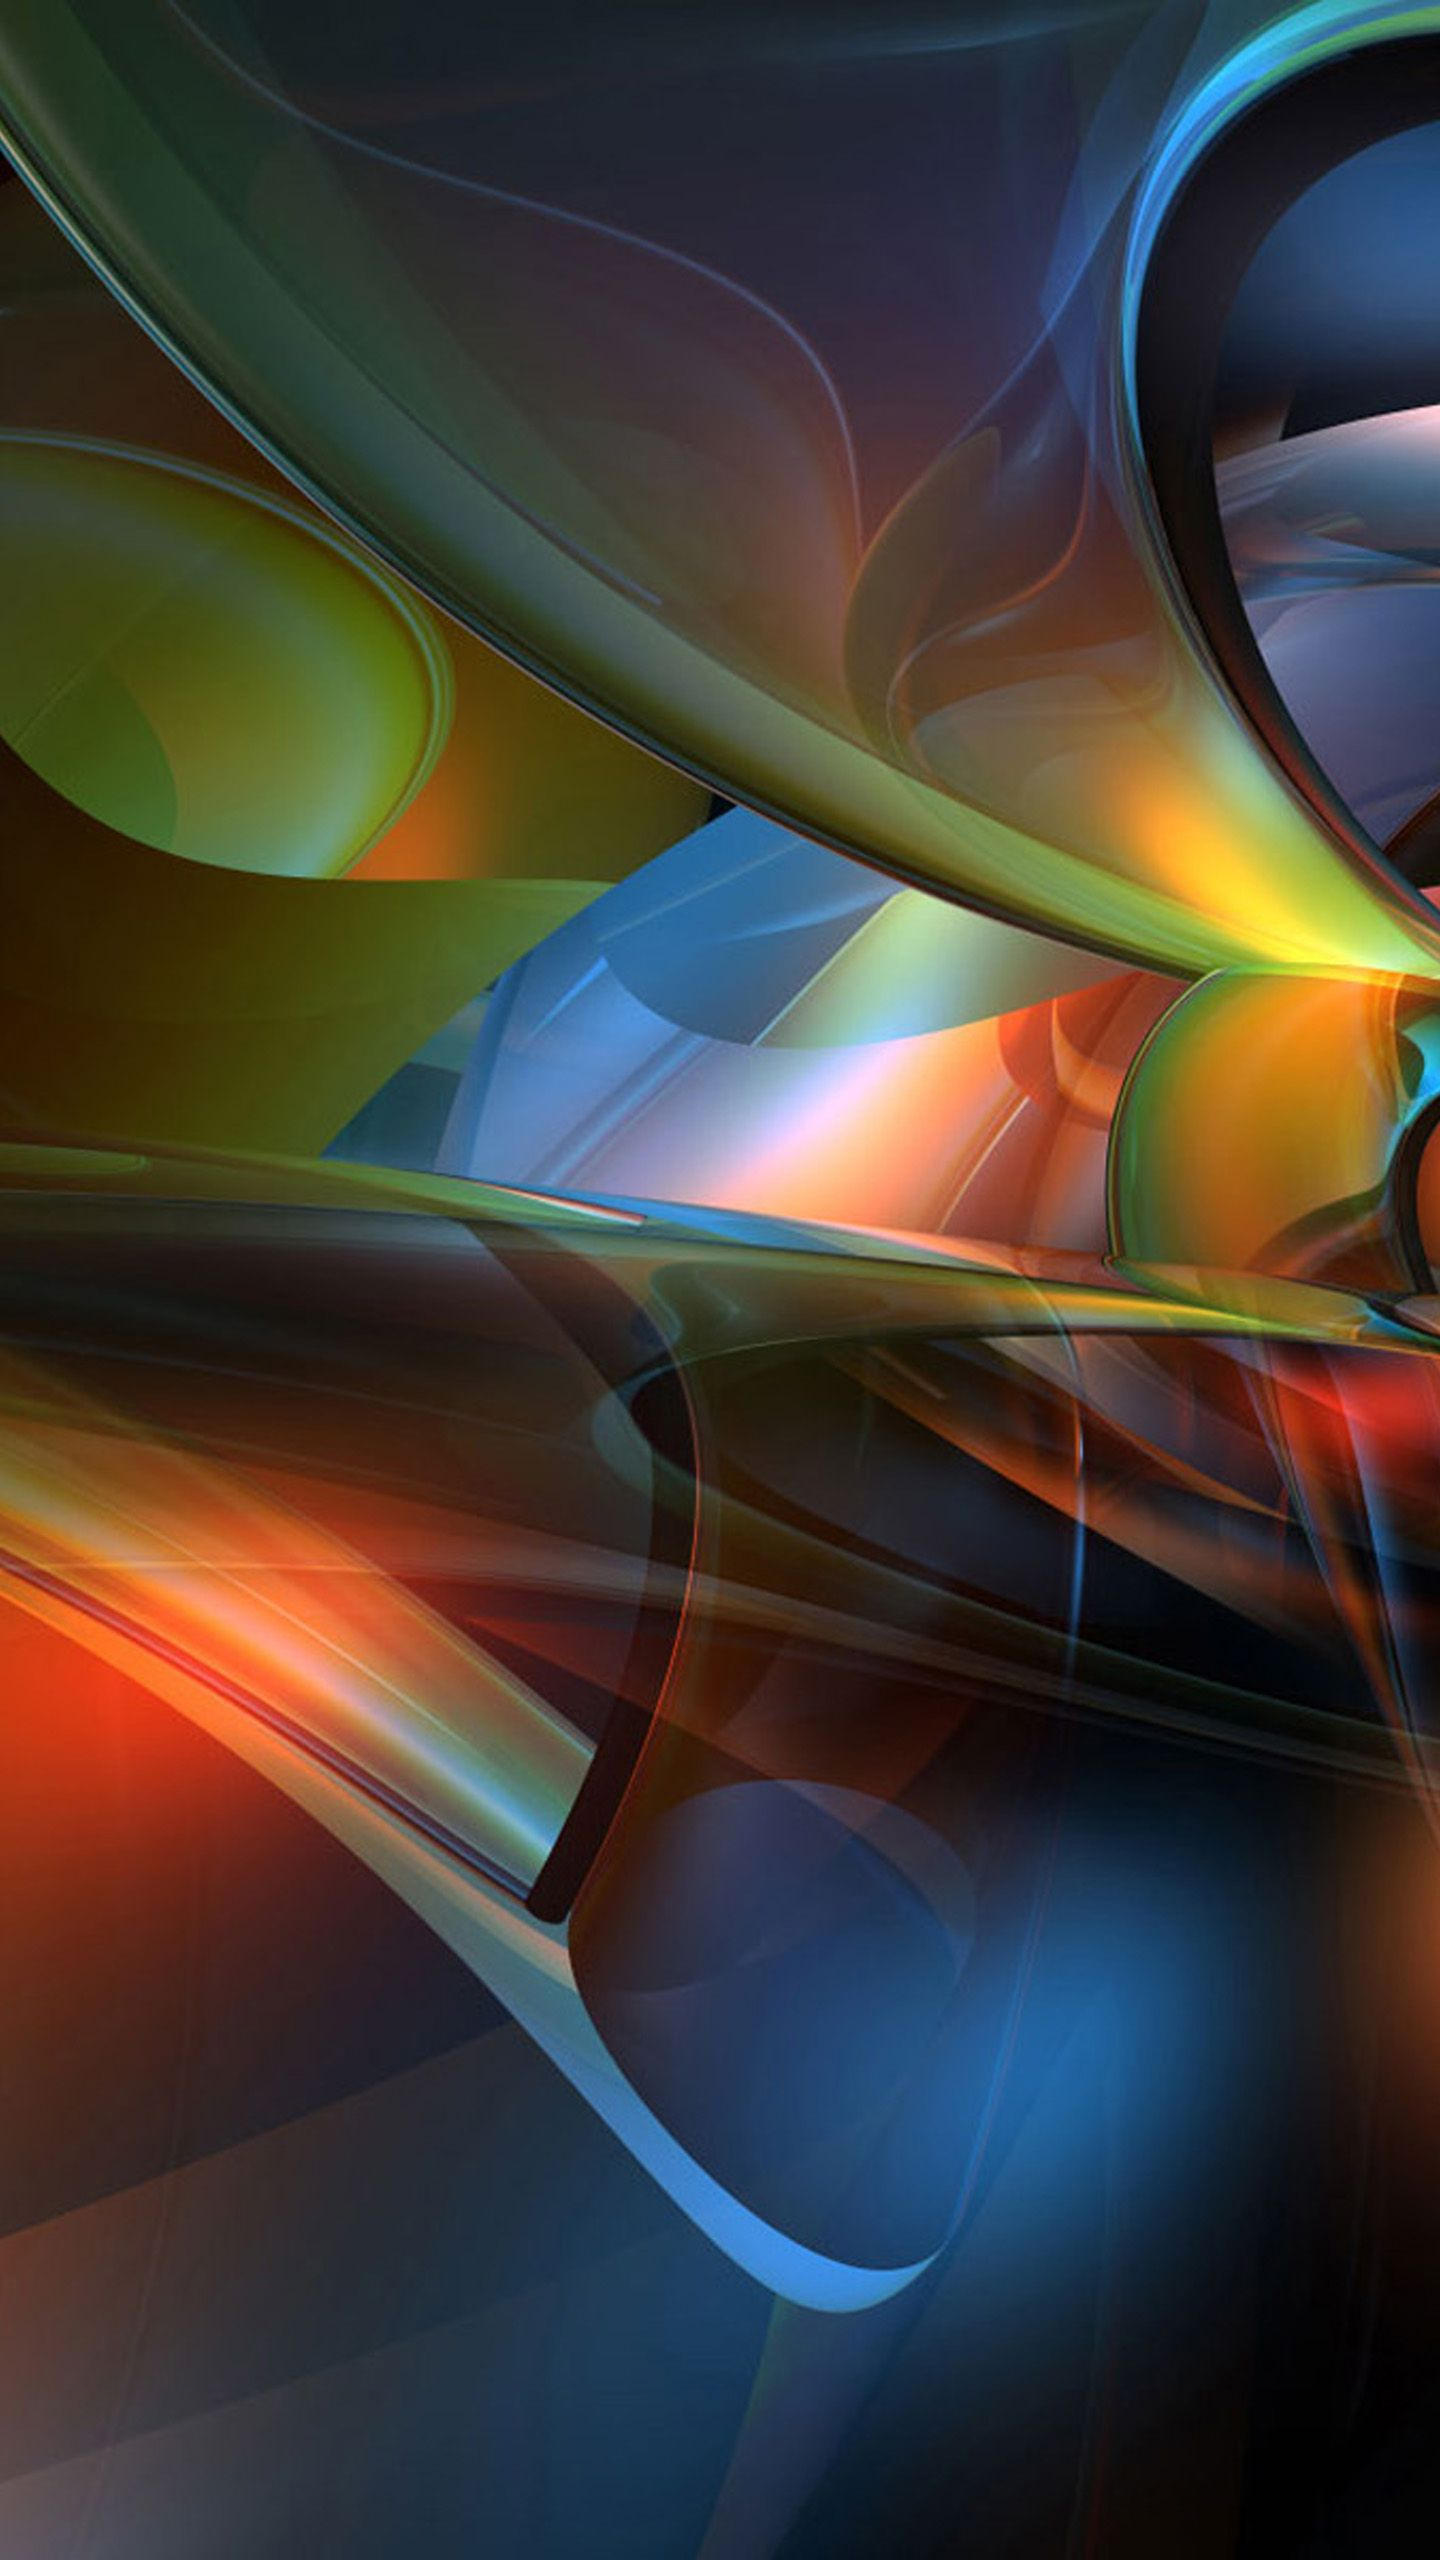 3d Abstract Mobile Phone Wallpaper Black Phone Wallpaper Android Wallpaper 3d Wallpaper For Mobile